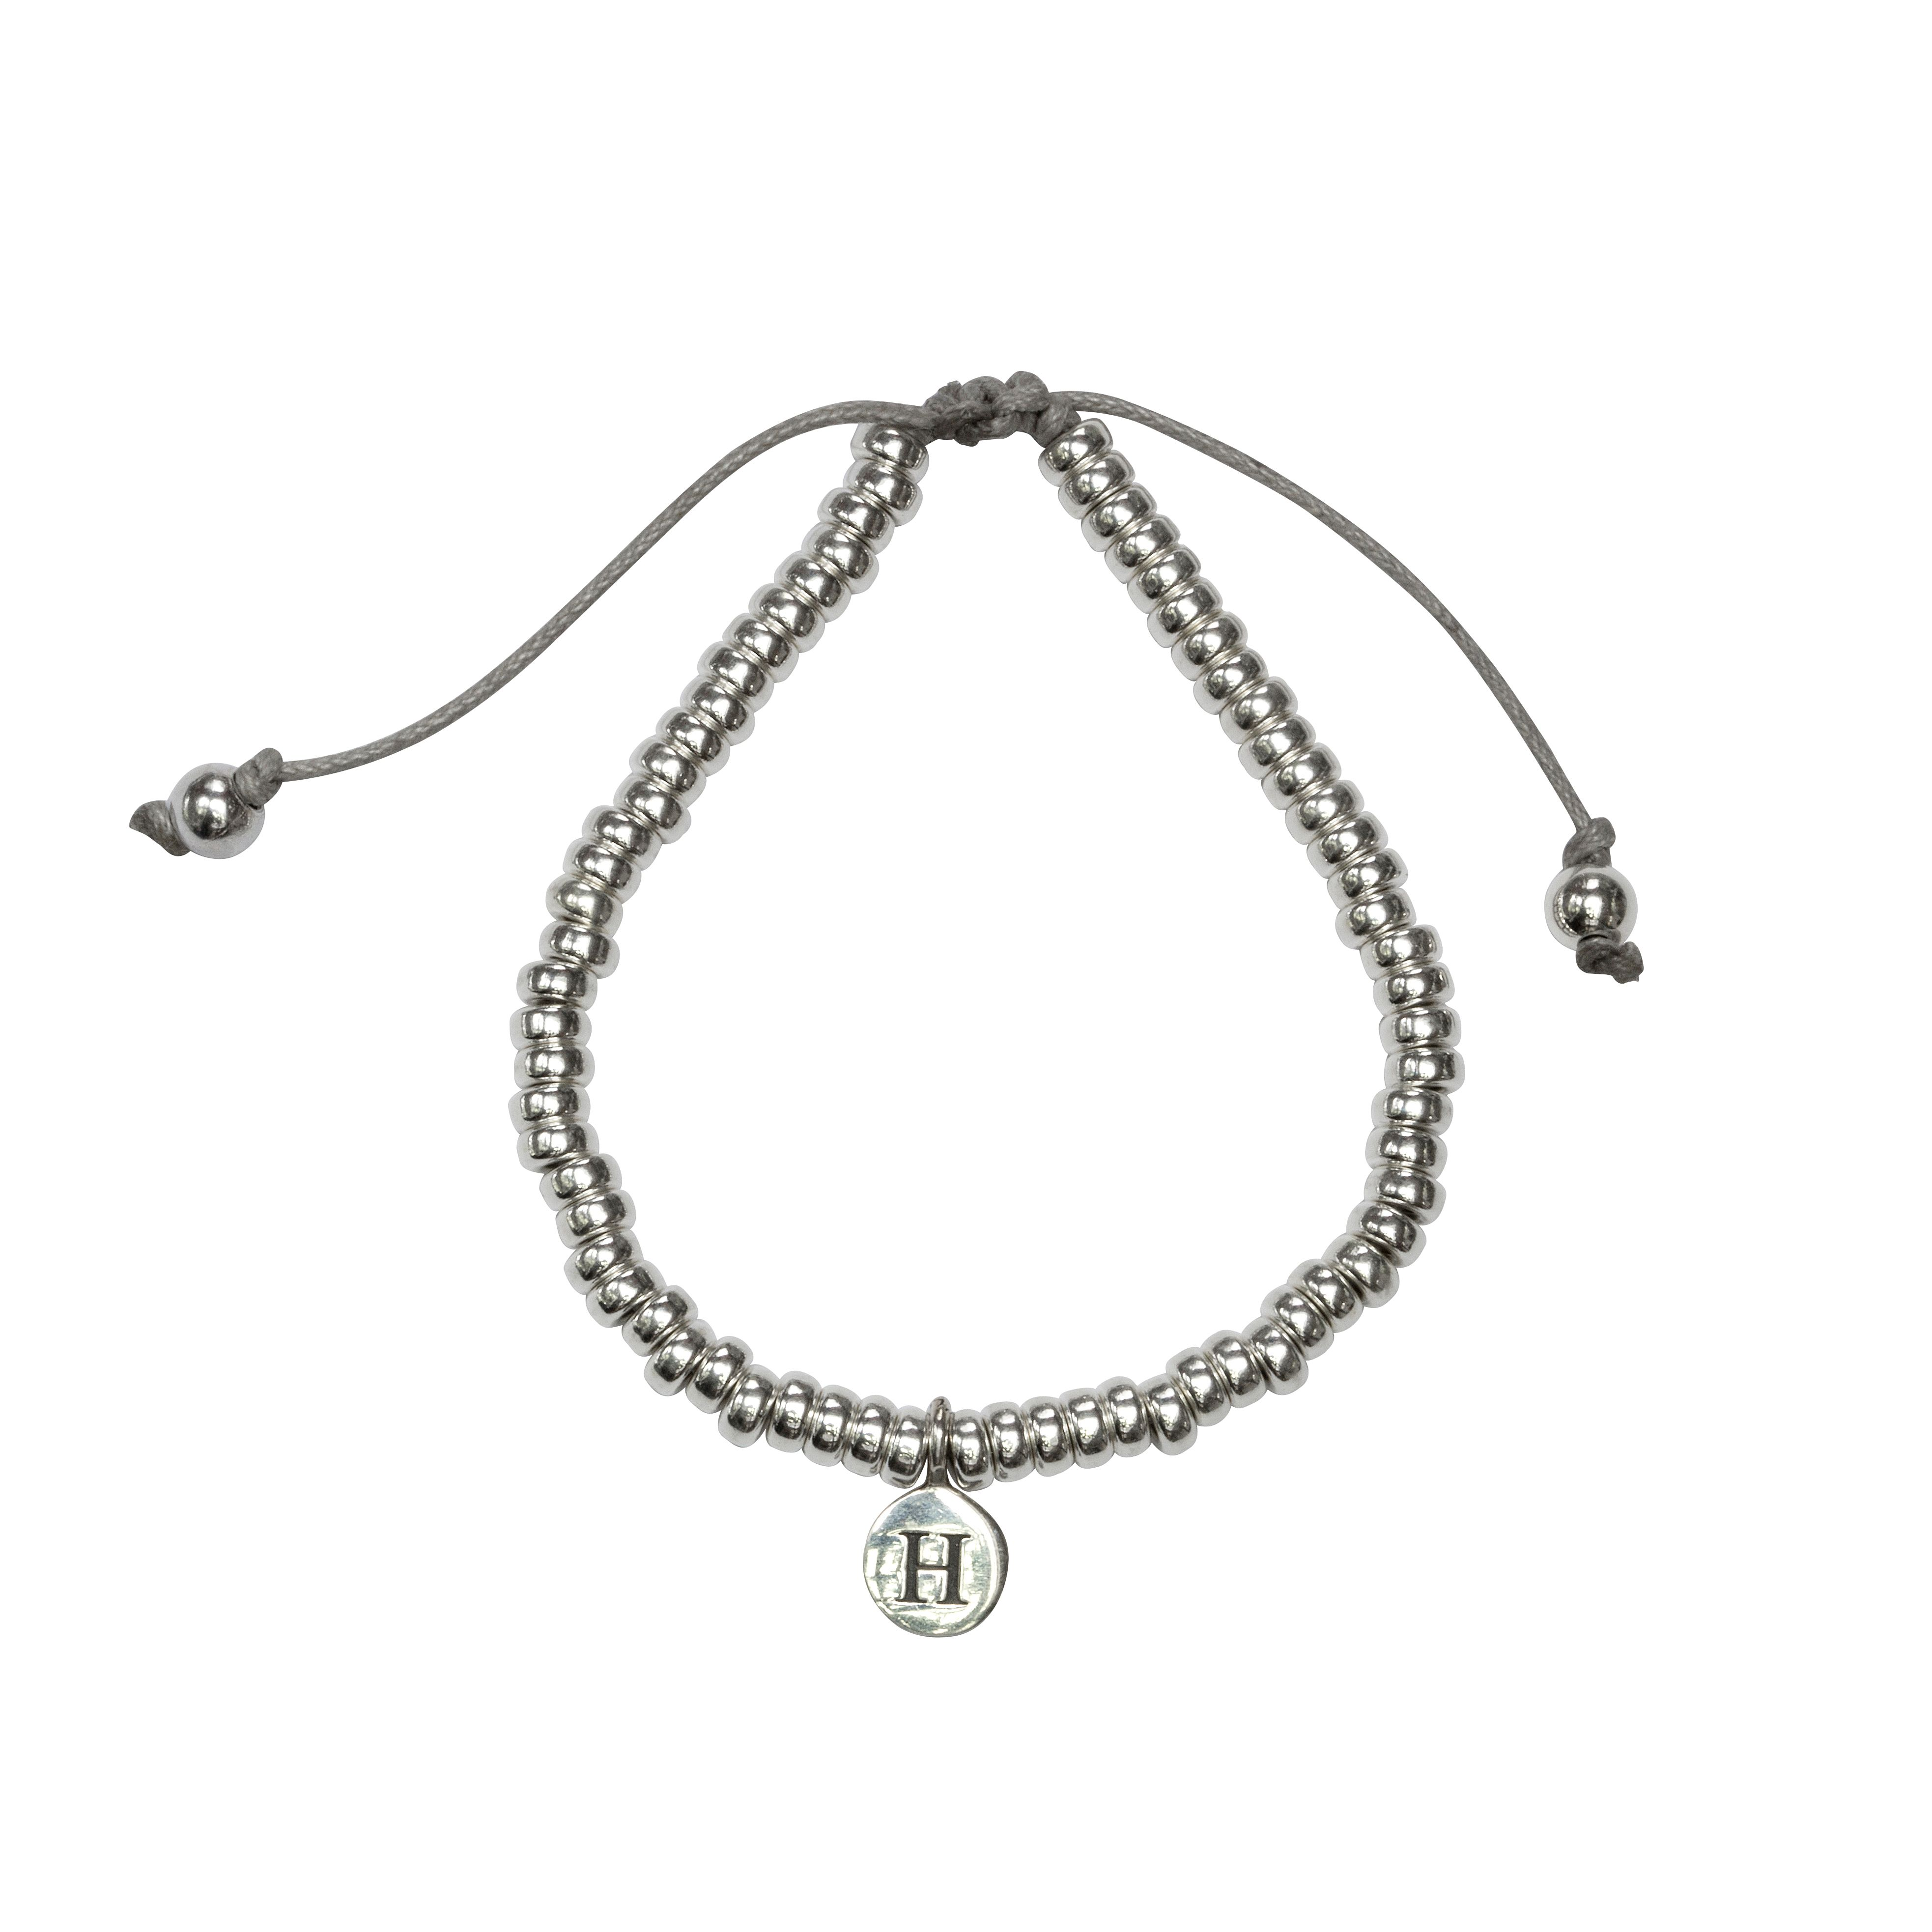 Win a Sterling Silver Friendship Bracelet with up to 2